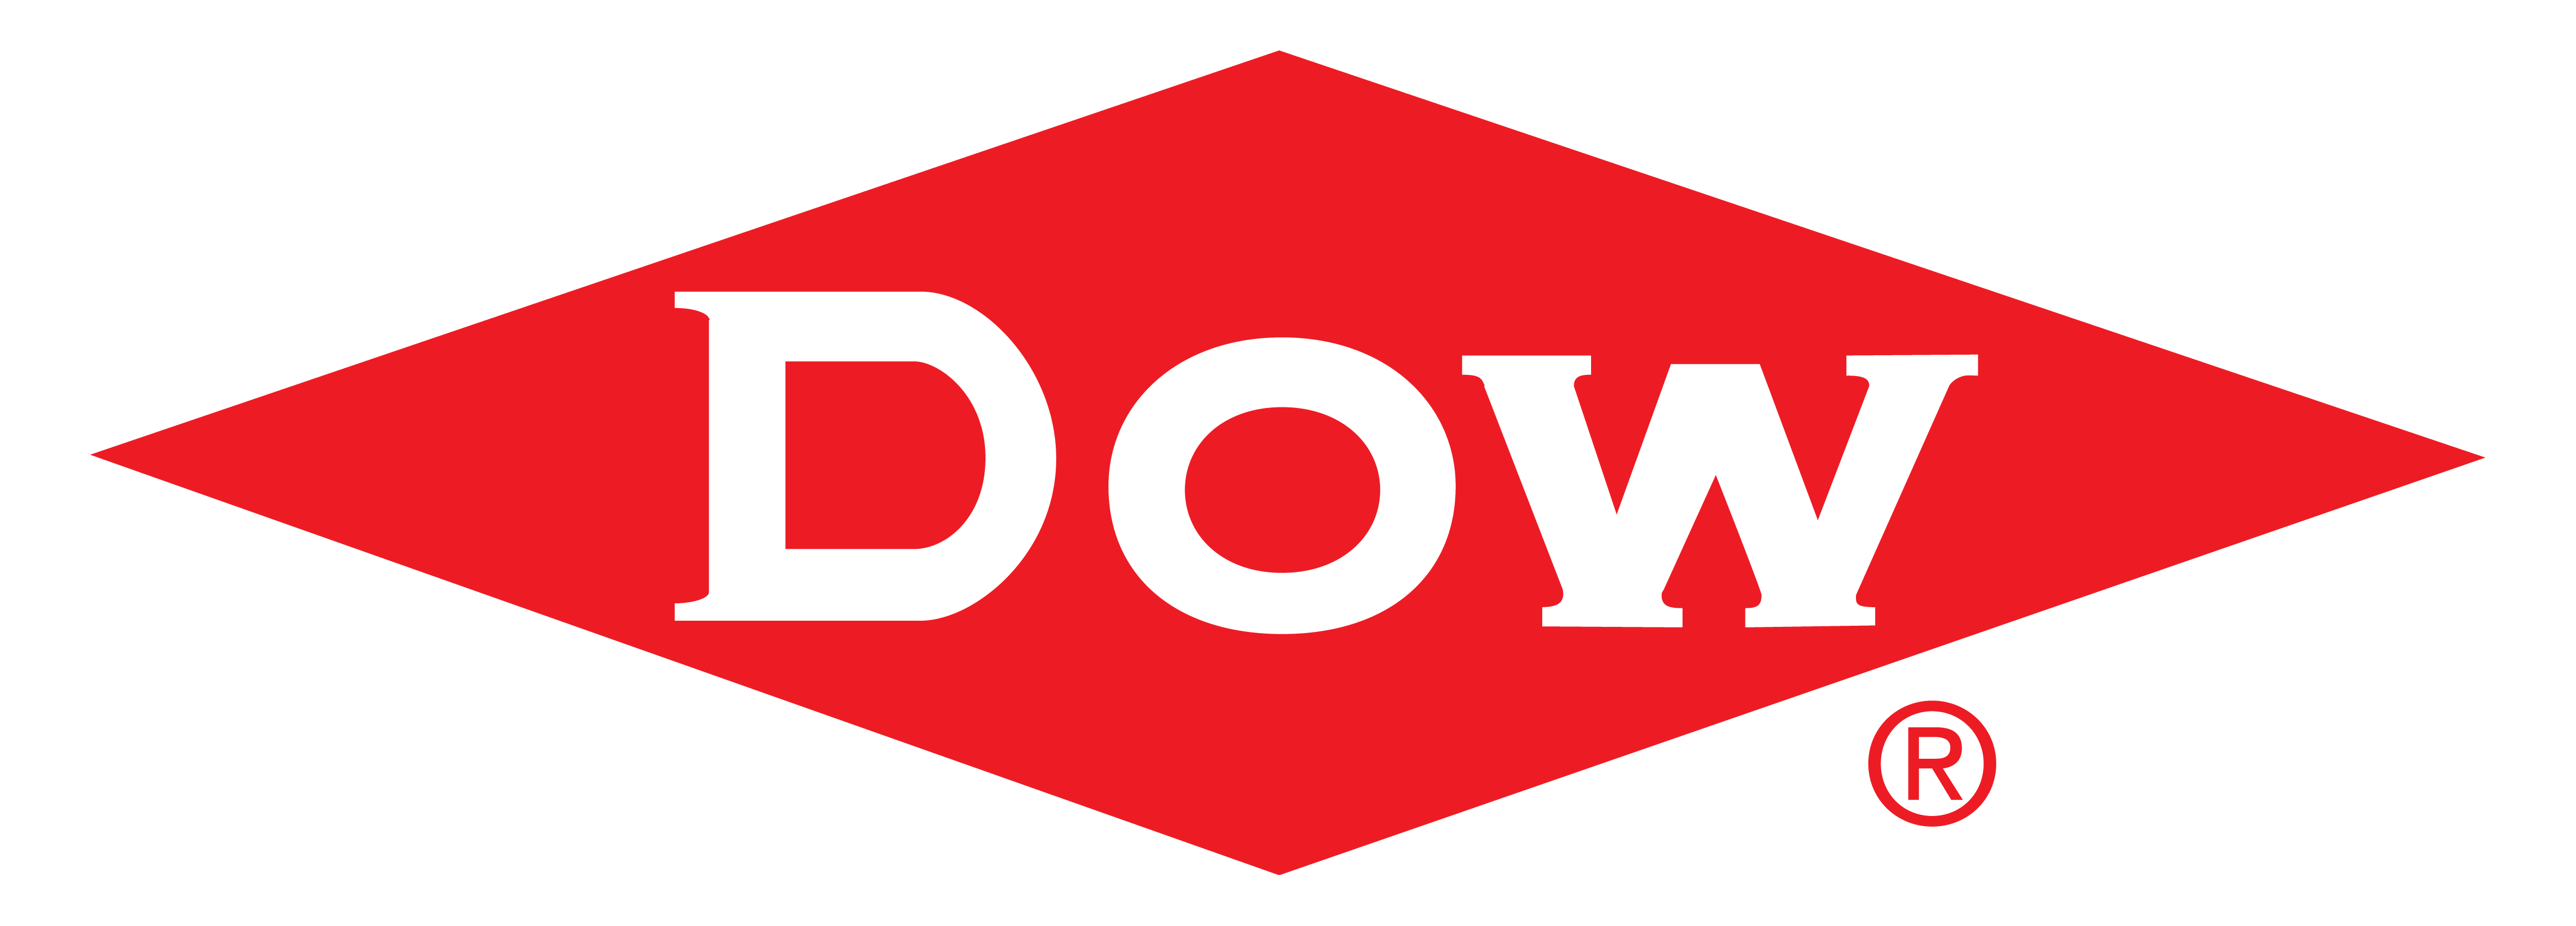 Download Dow Logo PNG Image for Free.